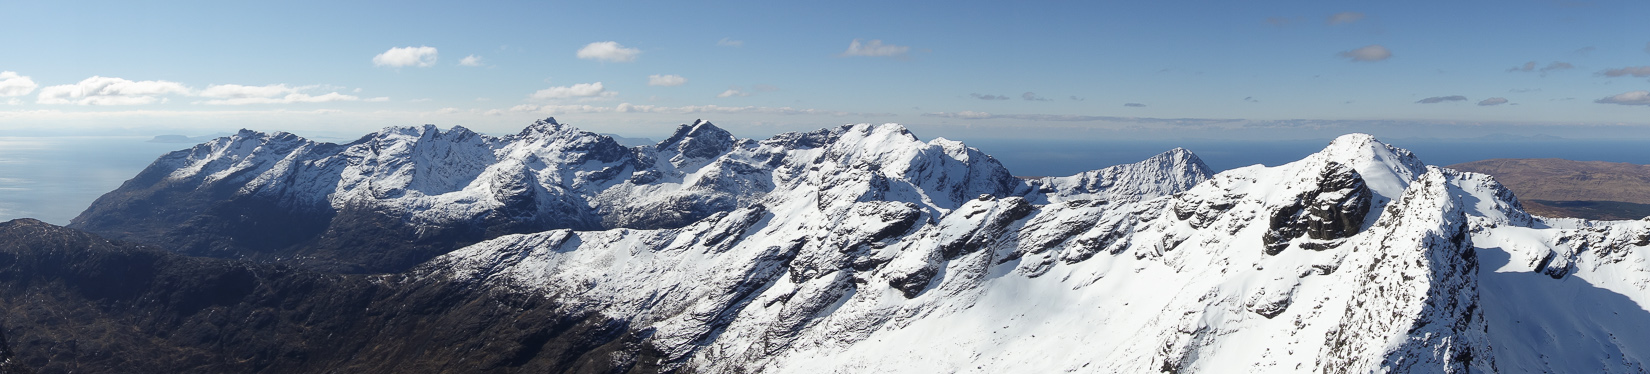 The Cuillin Ridge in Winter